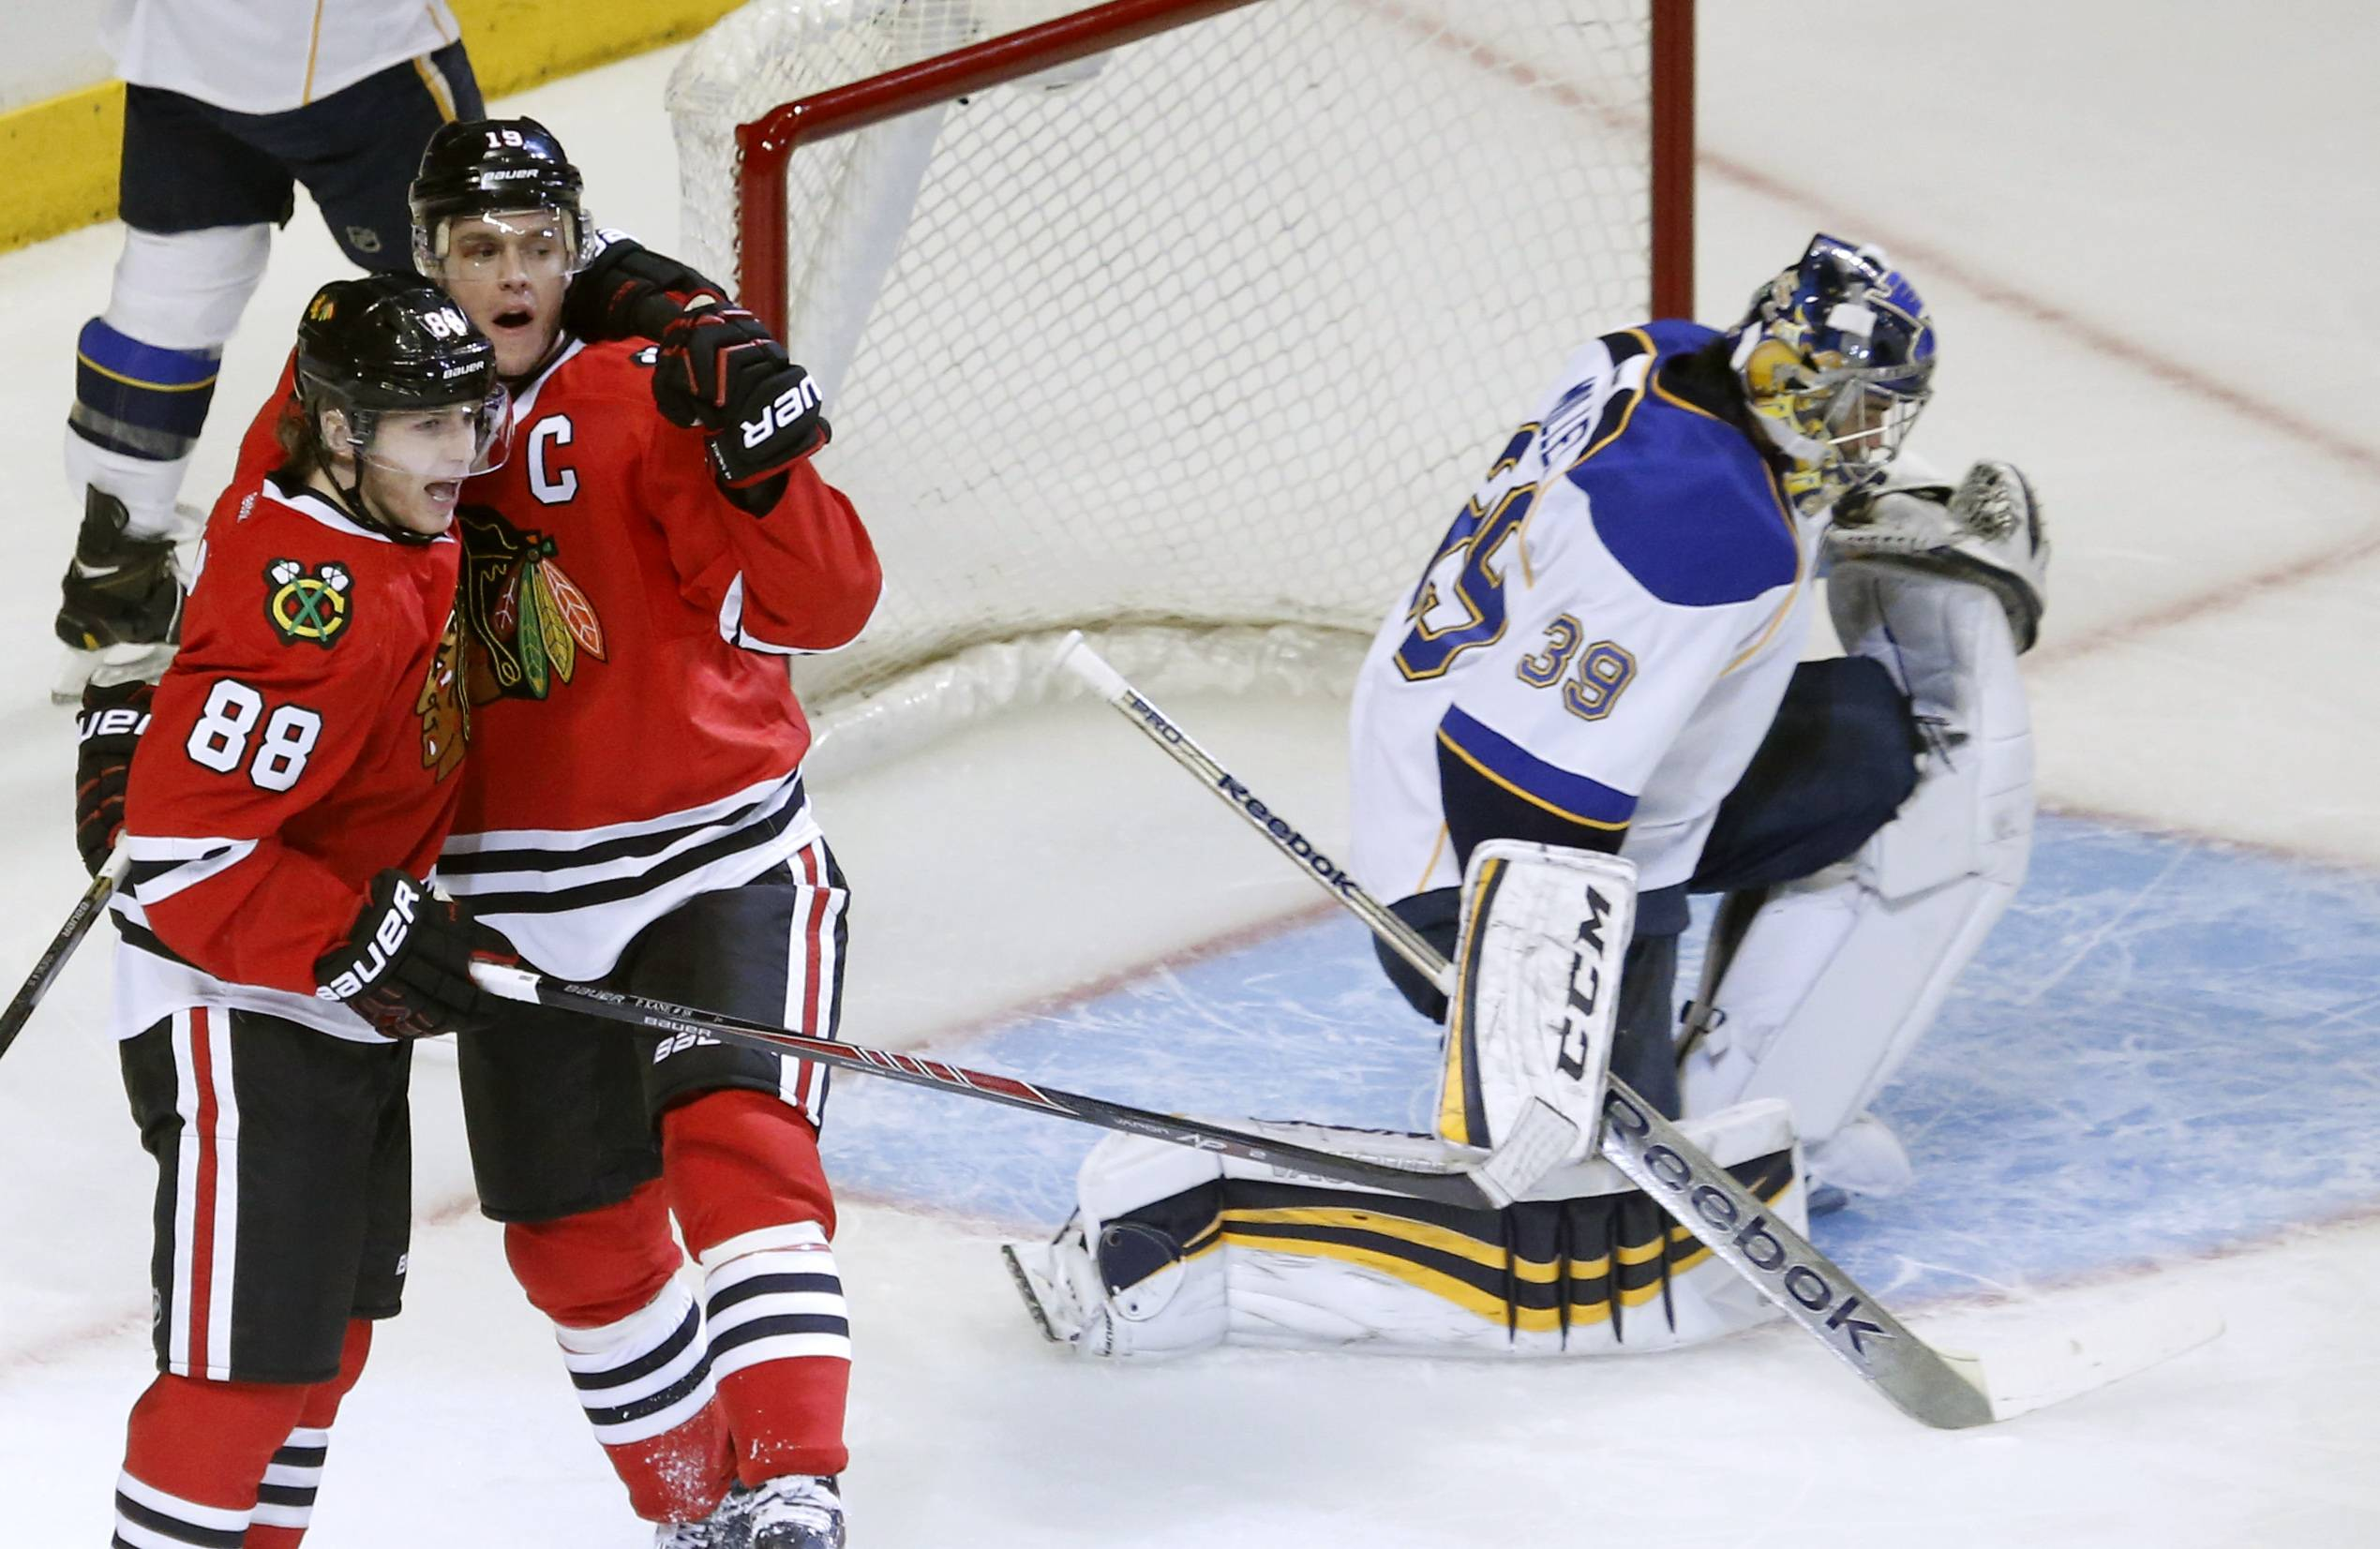 Chicago Blackhawks center Jonathan Toews, a second from left, celebrates his goal with Patrick Kane next to St. Louis Blues goalie Ryan Miller during the first period in Game 3 of a first-round NHL hockey Stanley Cup playoff series game Monday in Chicago.